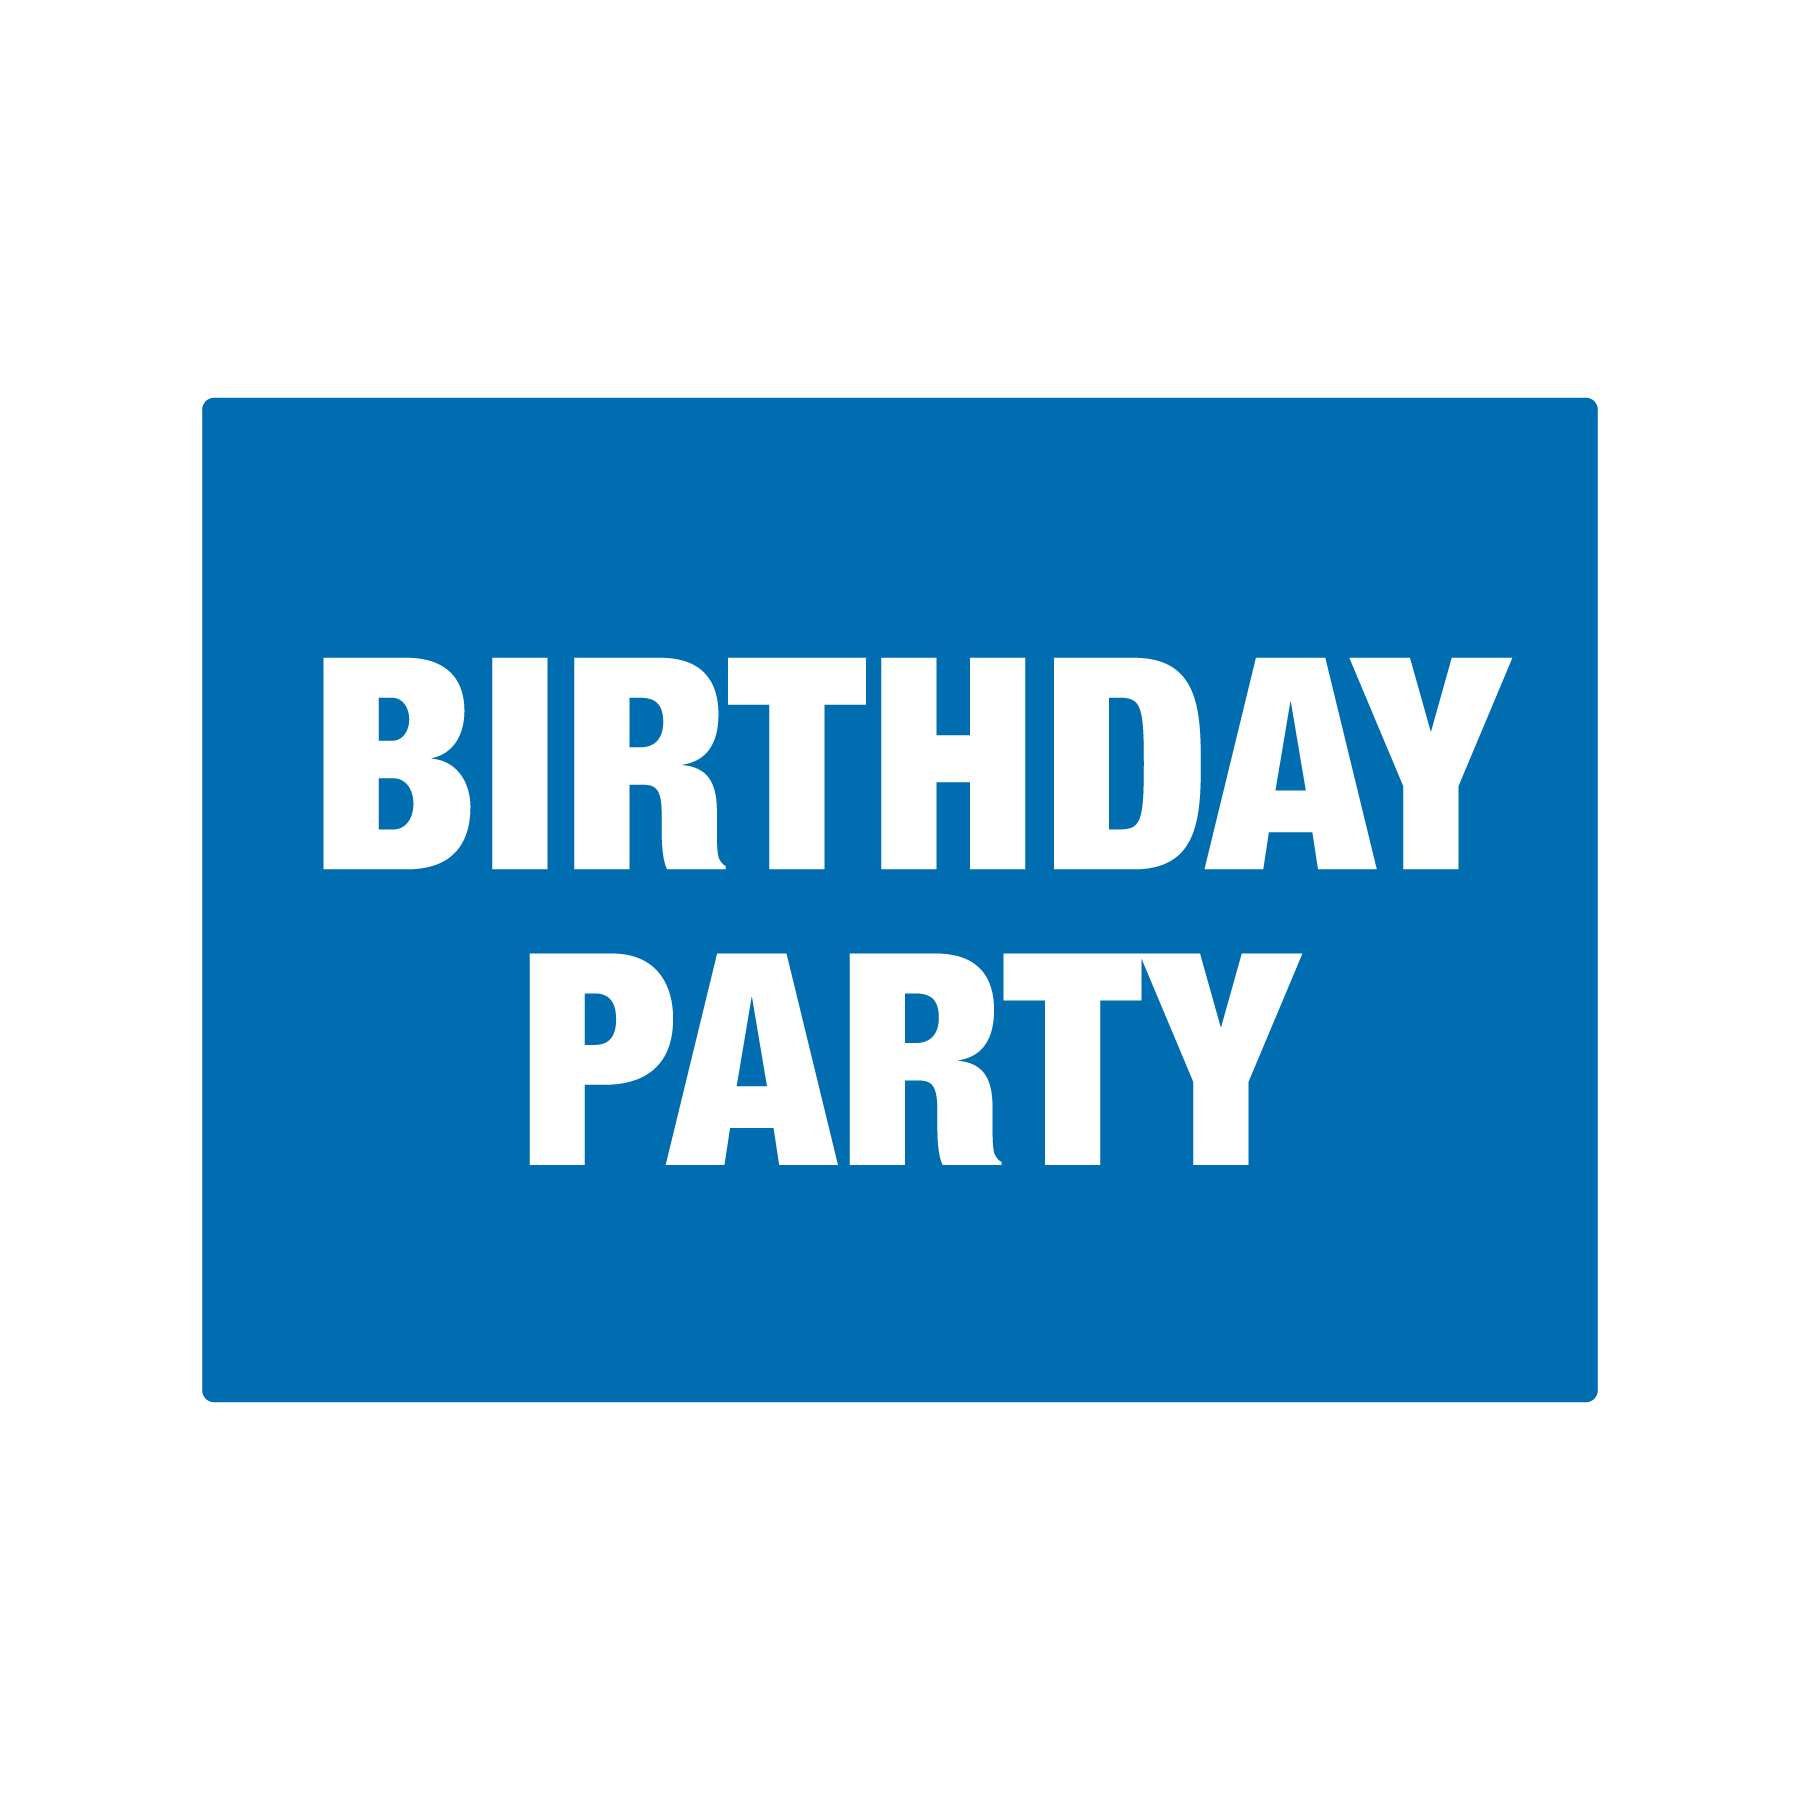 event-landing-page-buttons-birthday-party.png